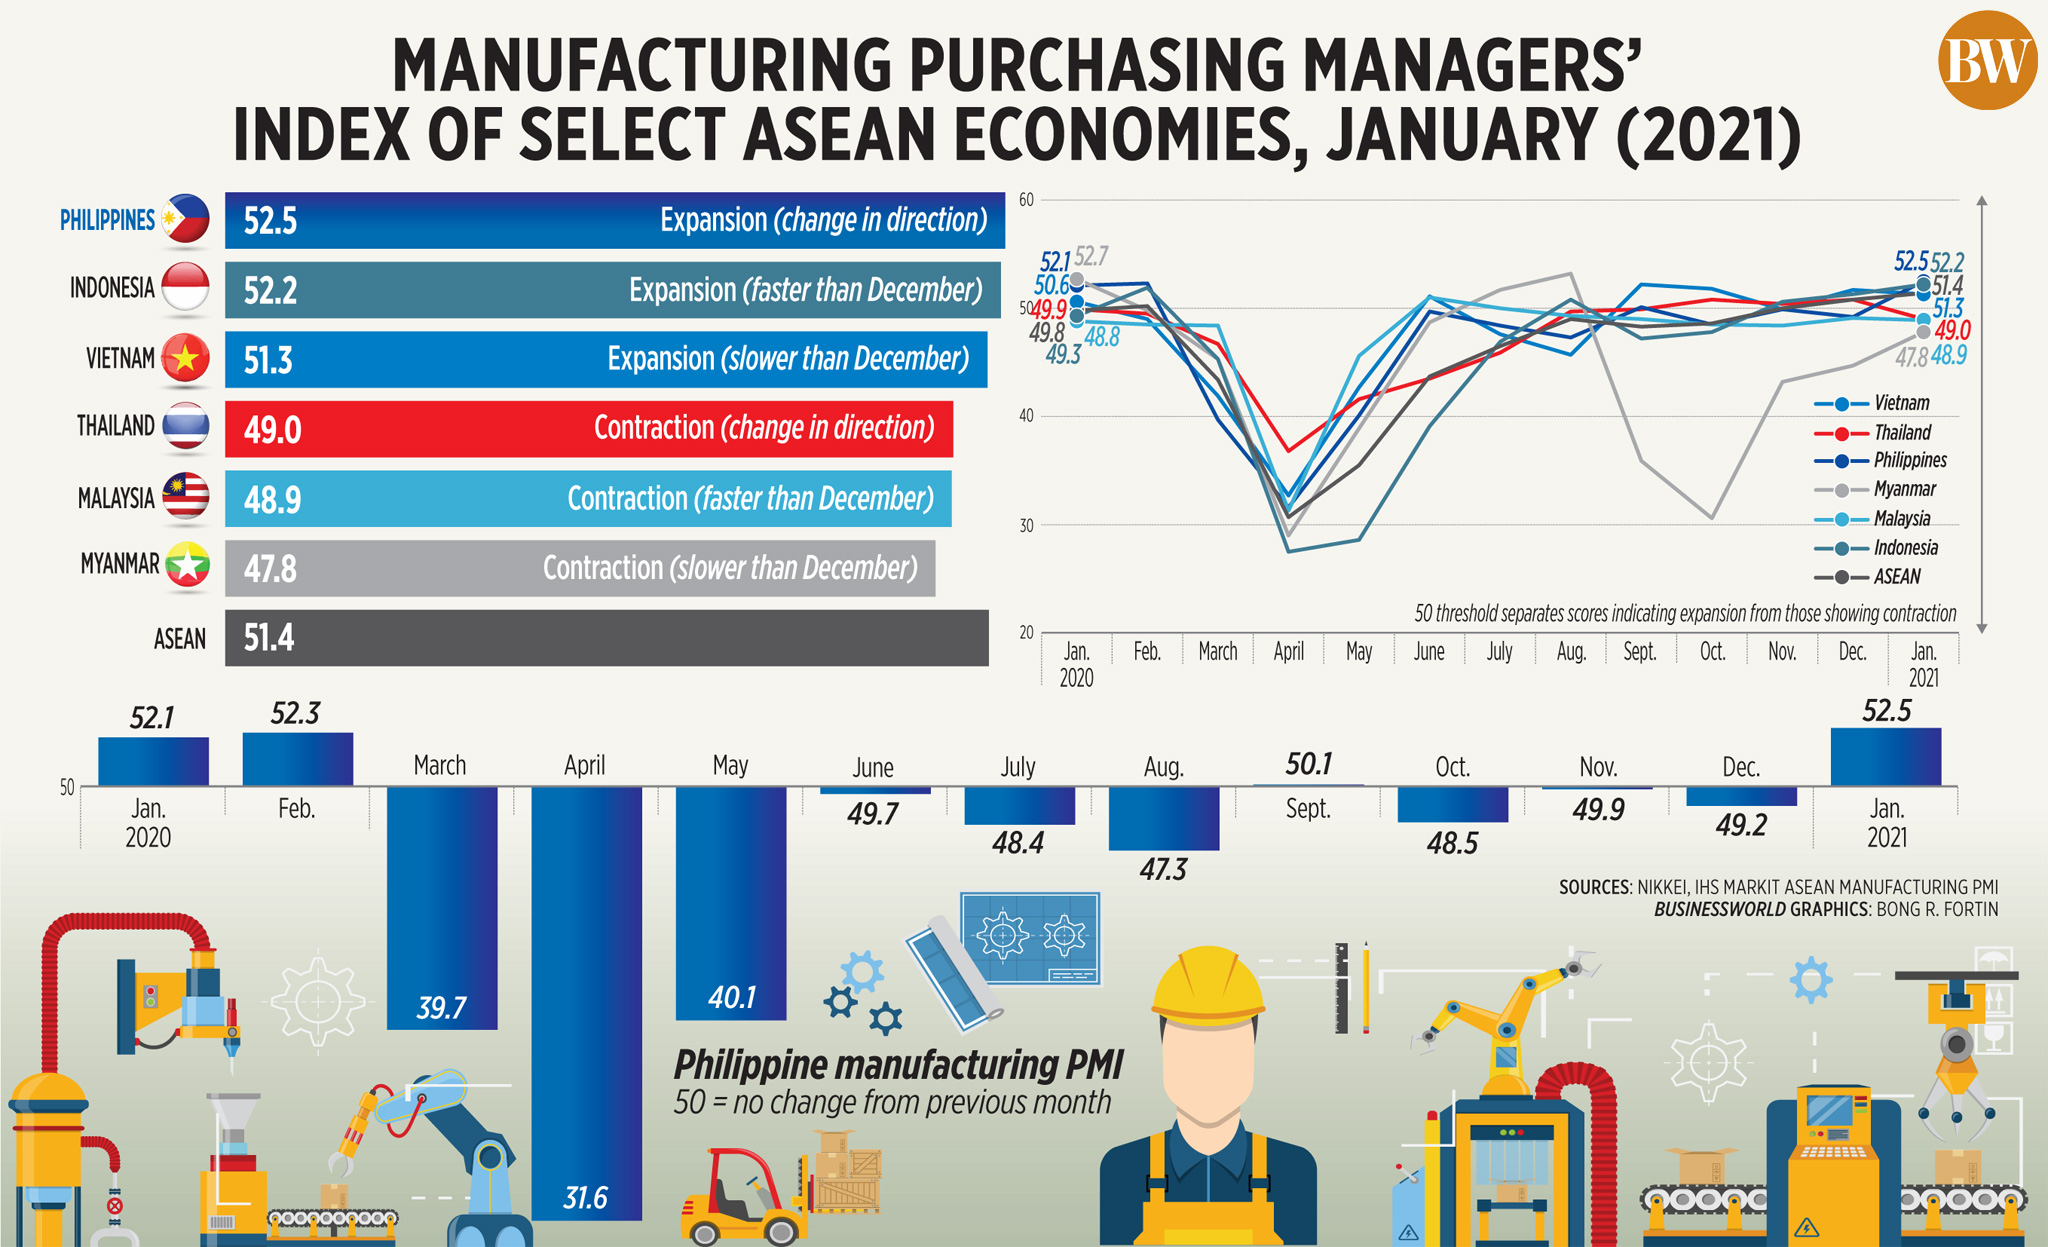 Manufacturing purchasing managers' index of select ASEAN economies, January (2021)